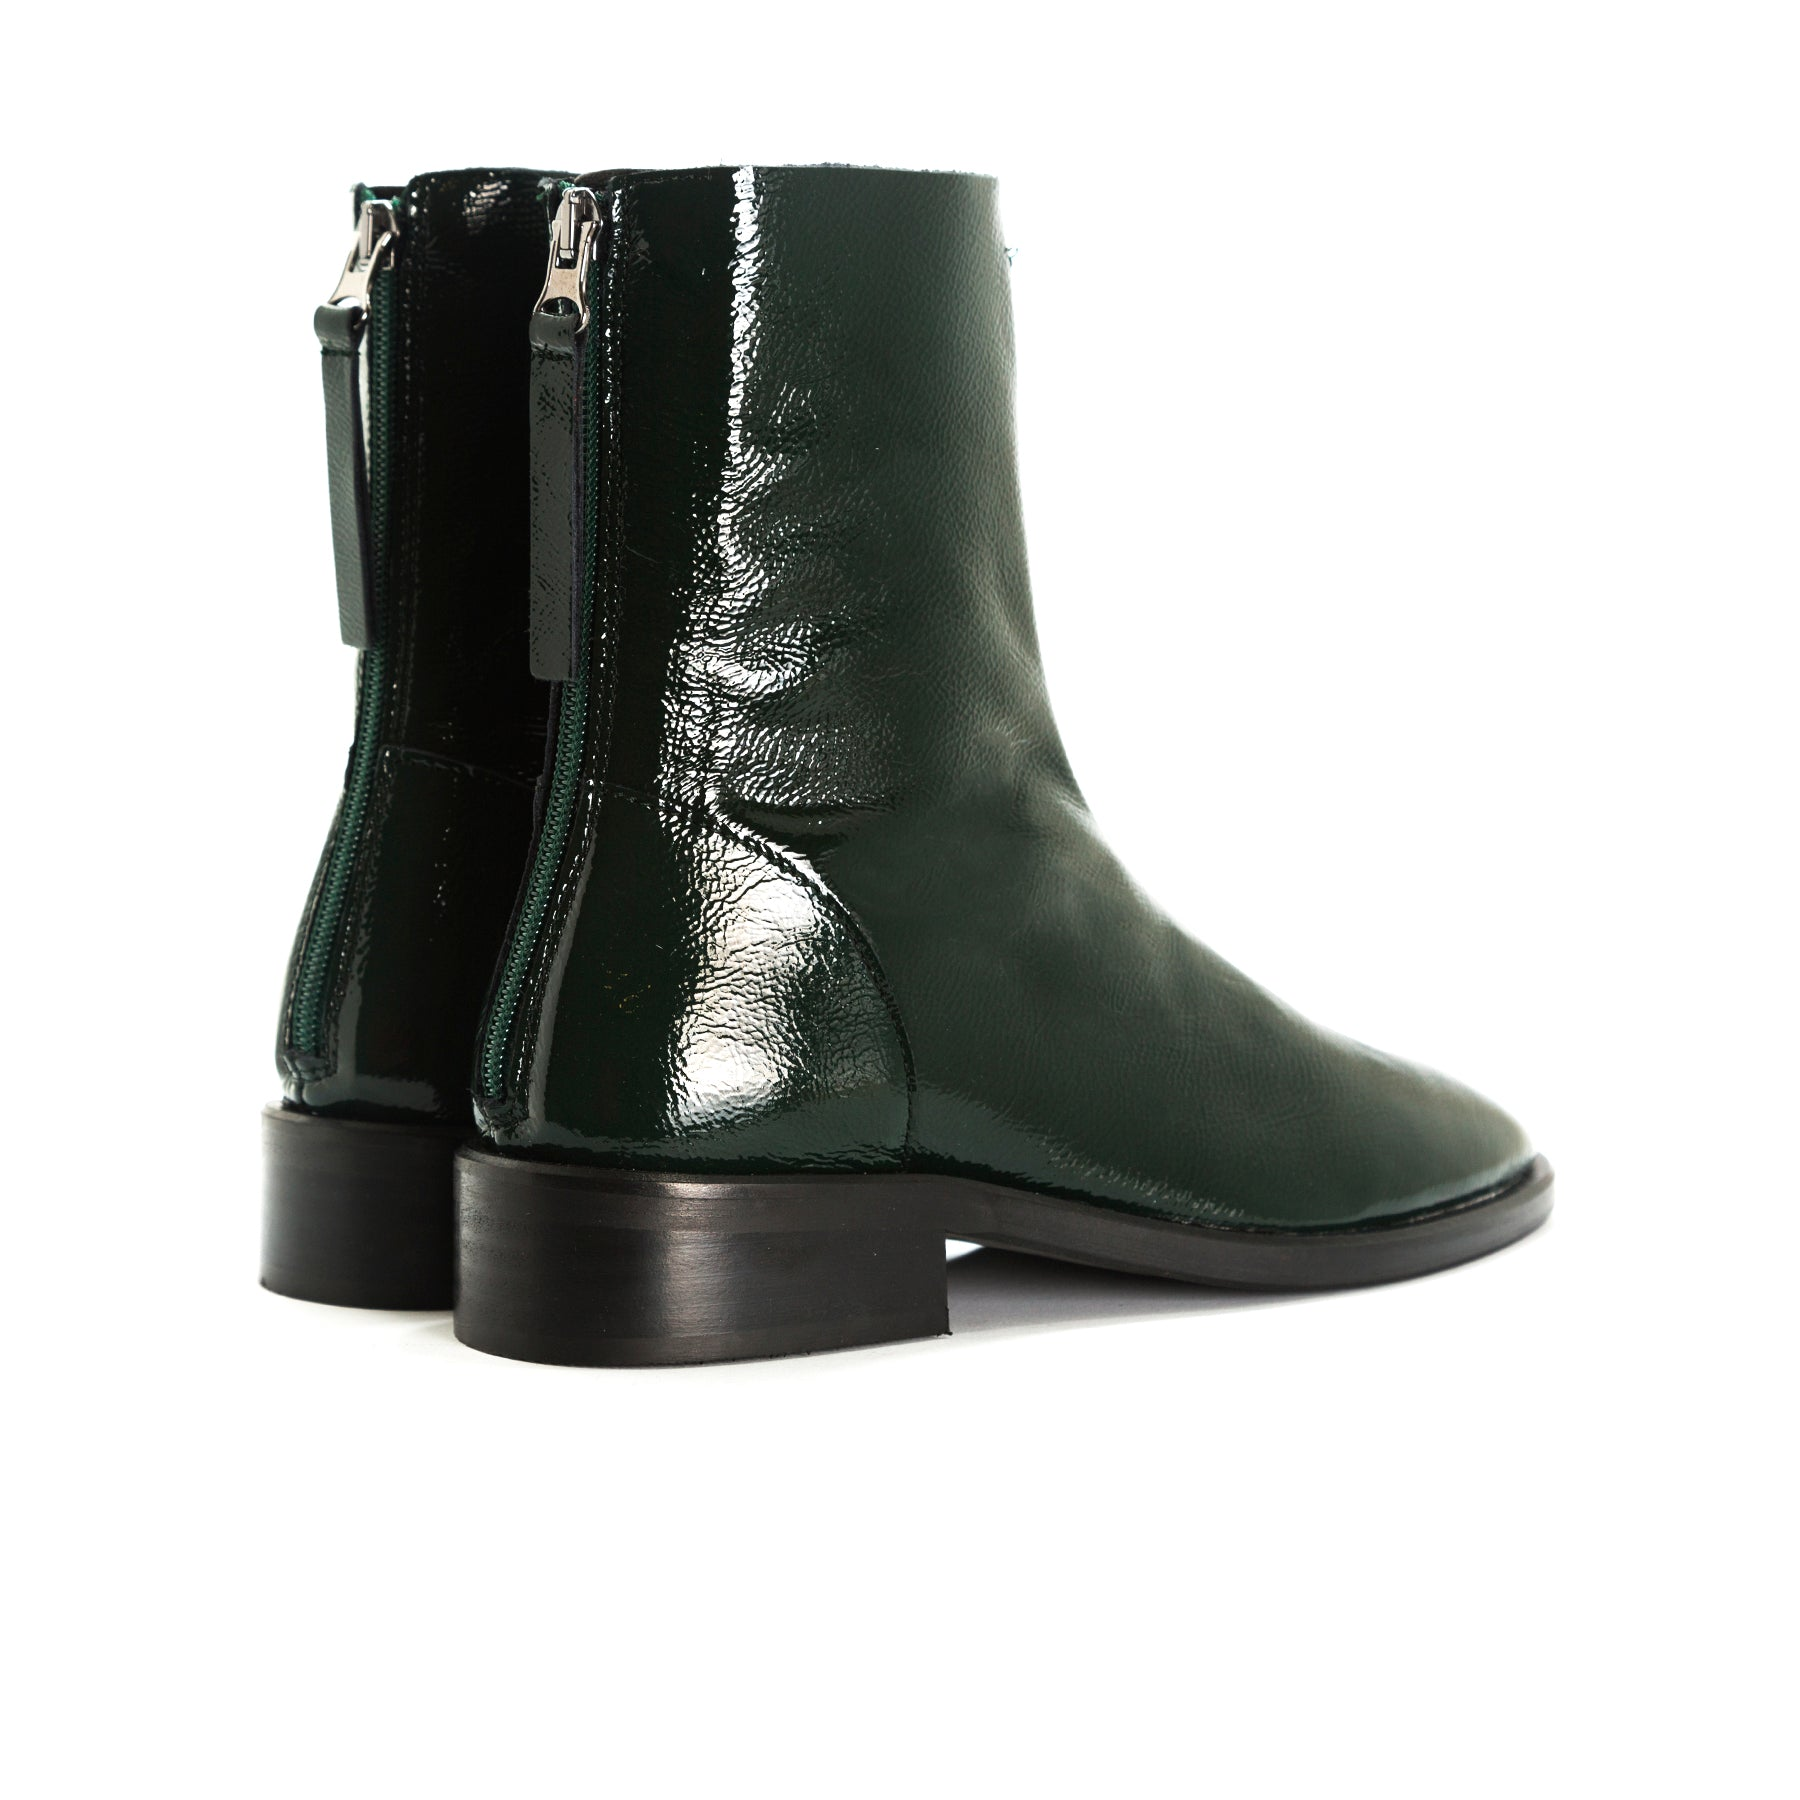 Dalton Green Naplack Ankle Boots